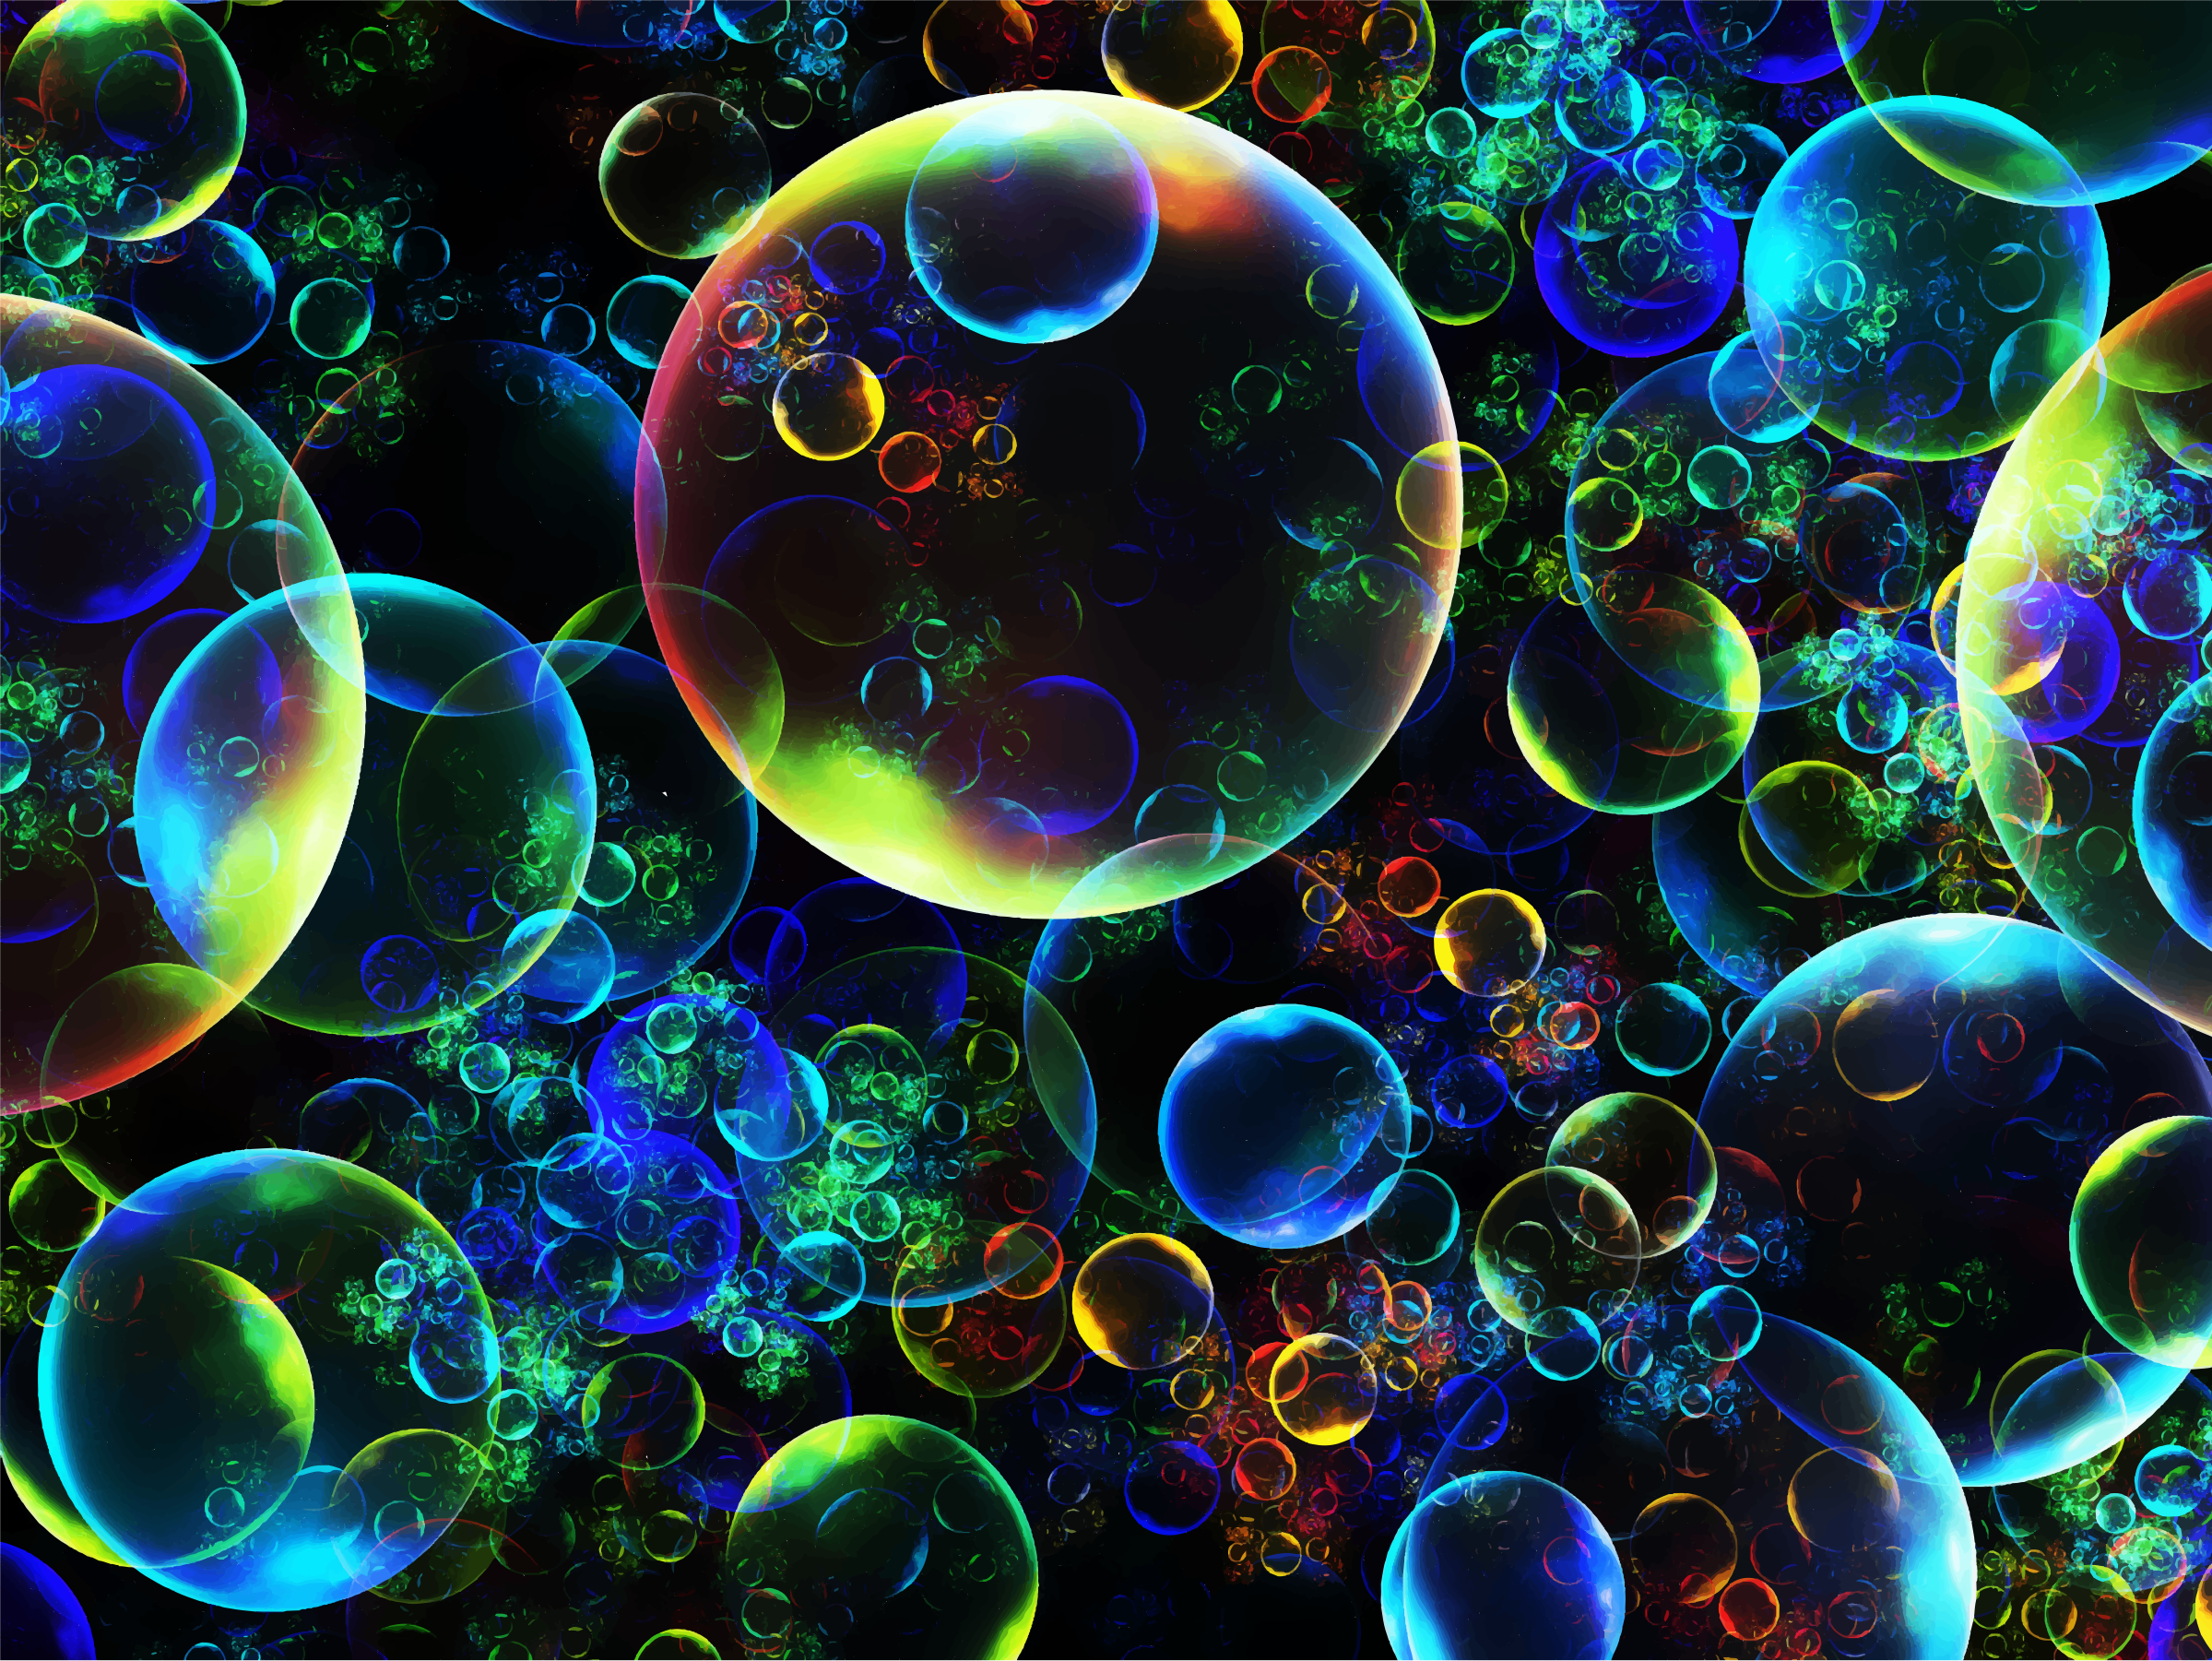 Prismatic Bubble Fractal (Daily Sketch 32) by GDJ